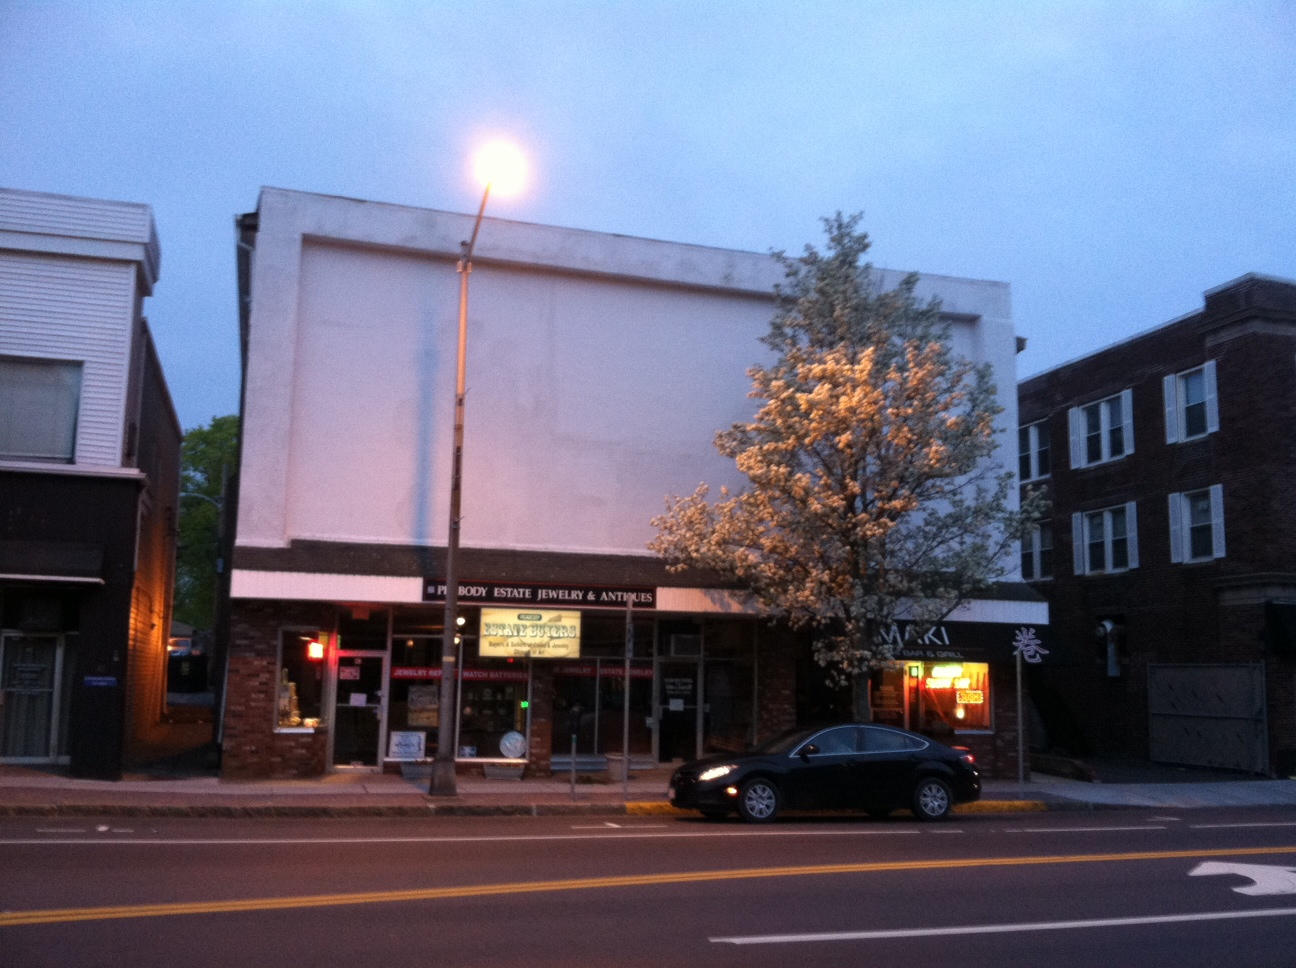 Peabody, MA - Downtown Commercial Building